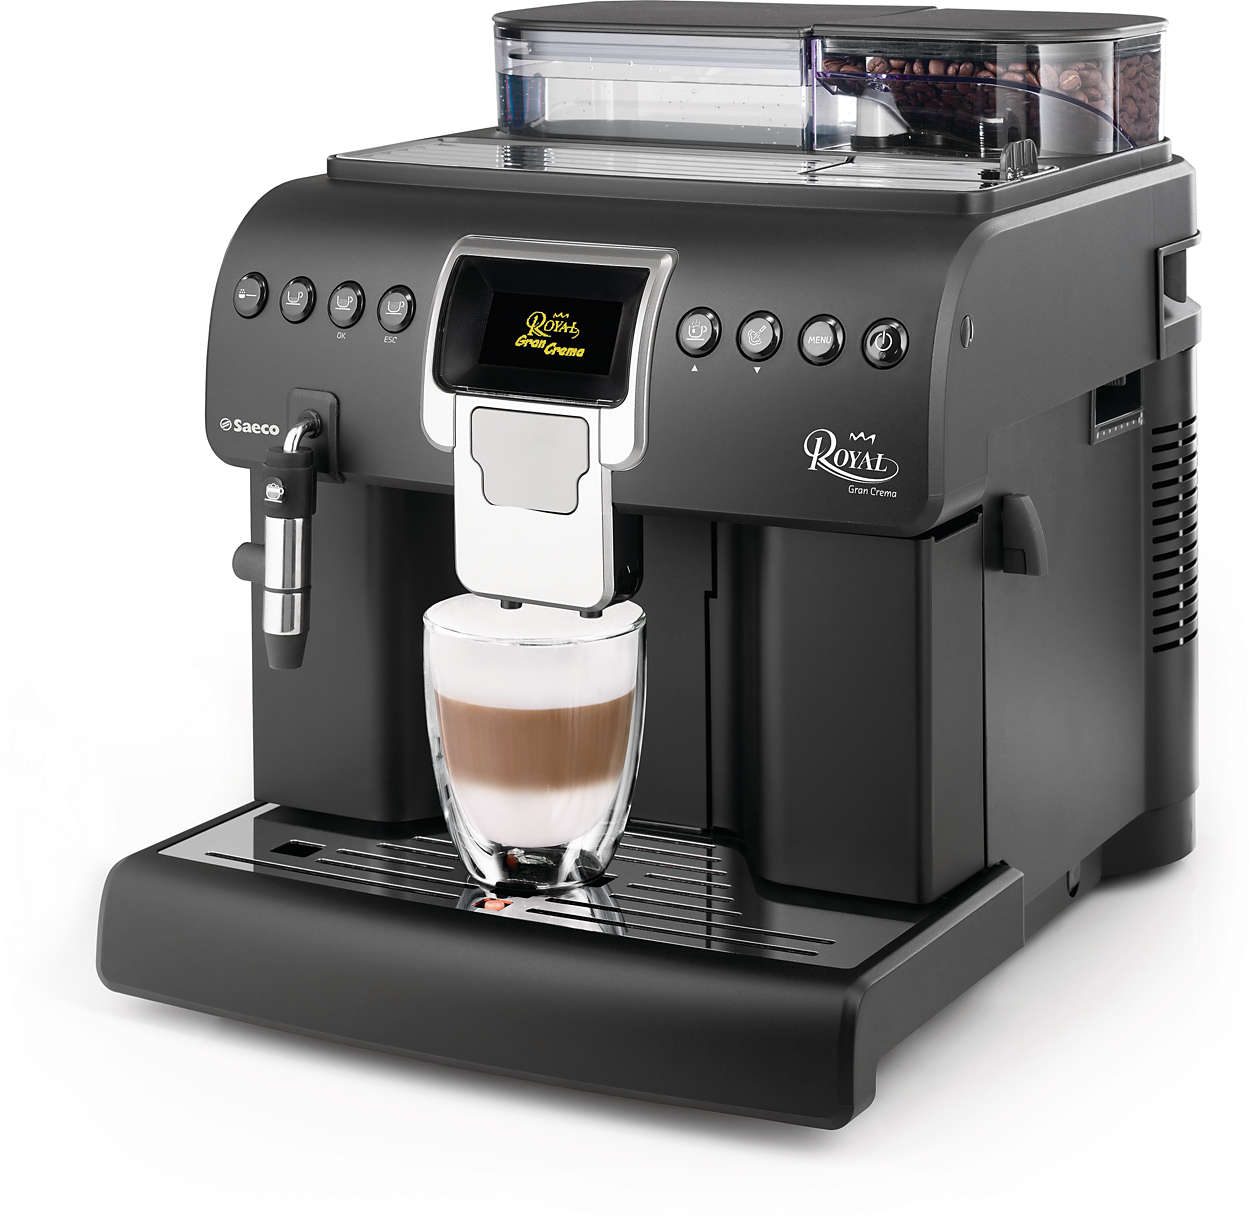 Philip Saeco Saeco Automatic Coffee Machines South Africa S Brand History And